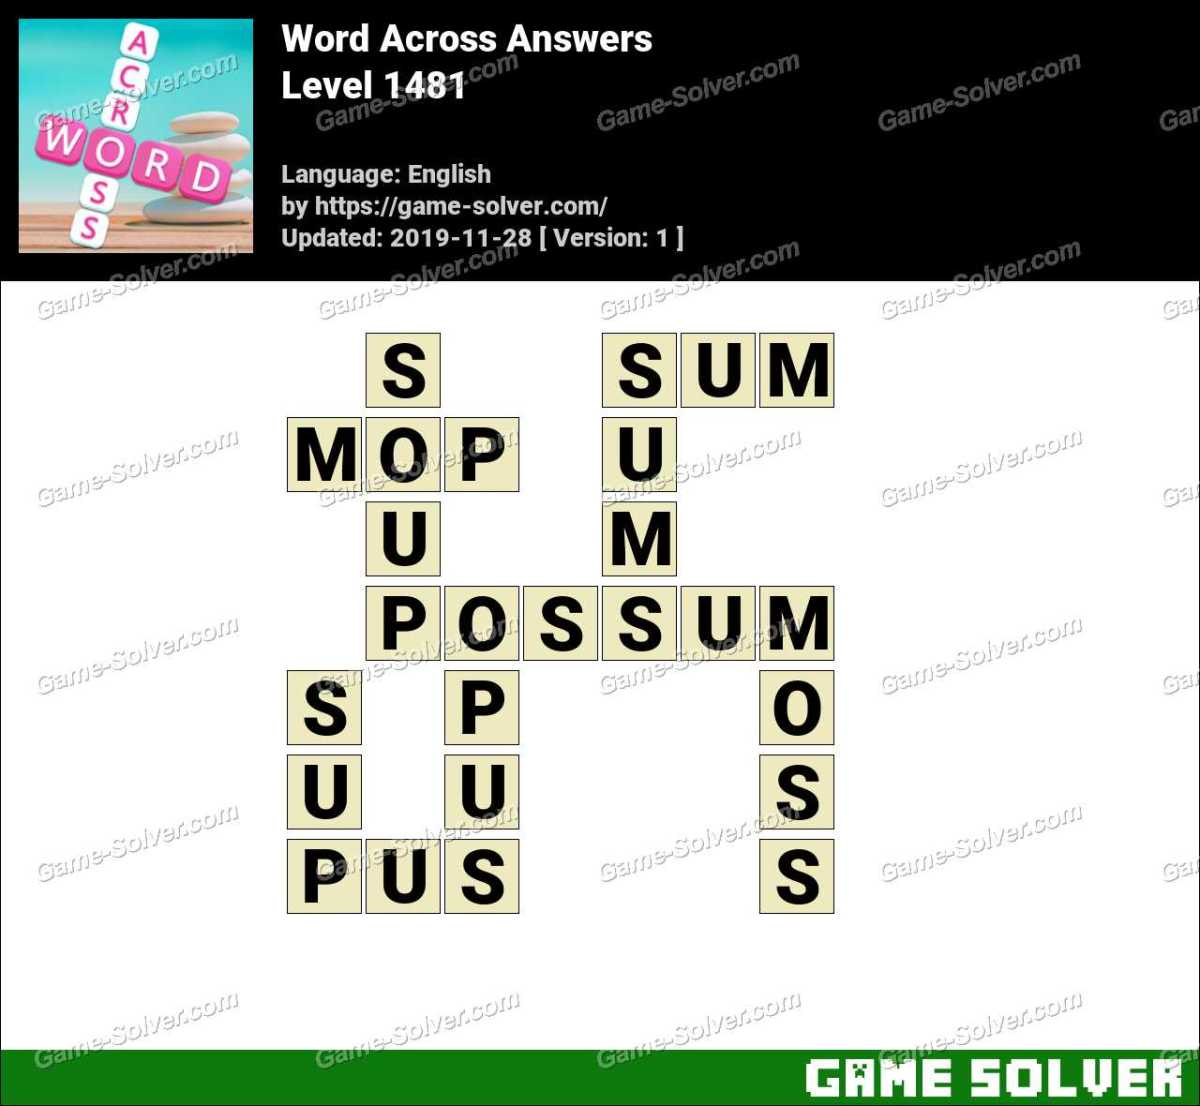 Word Across Level 1481 Answers